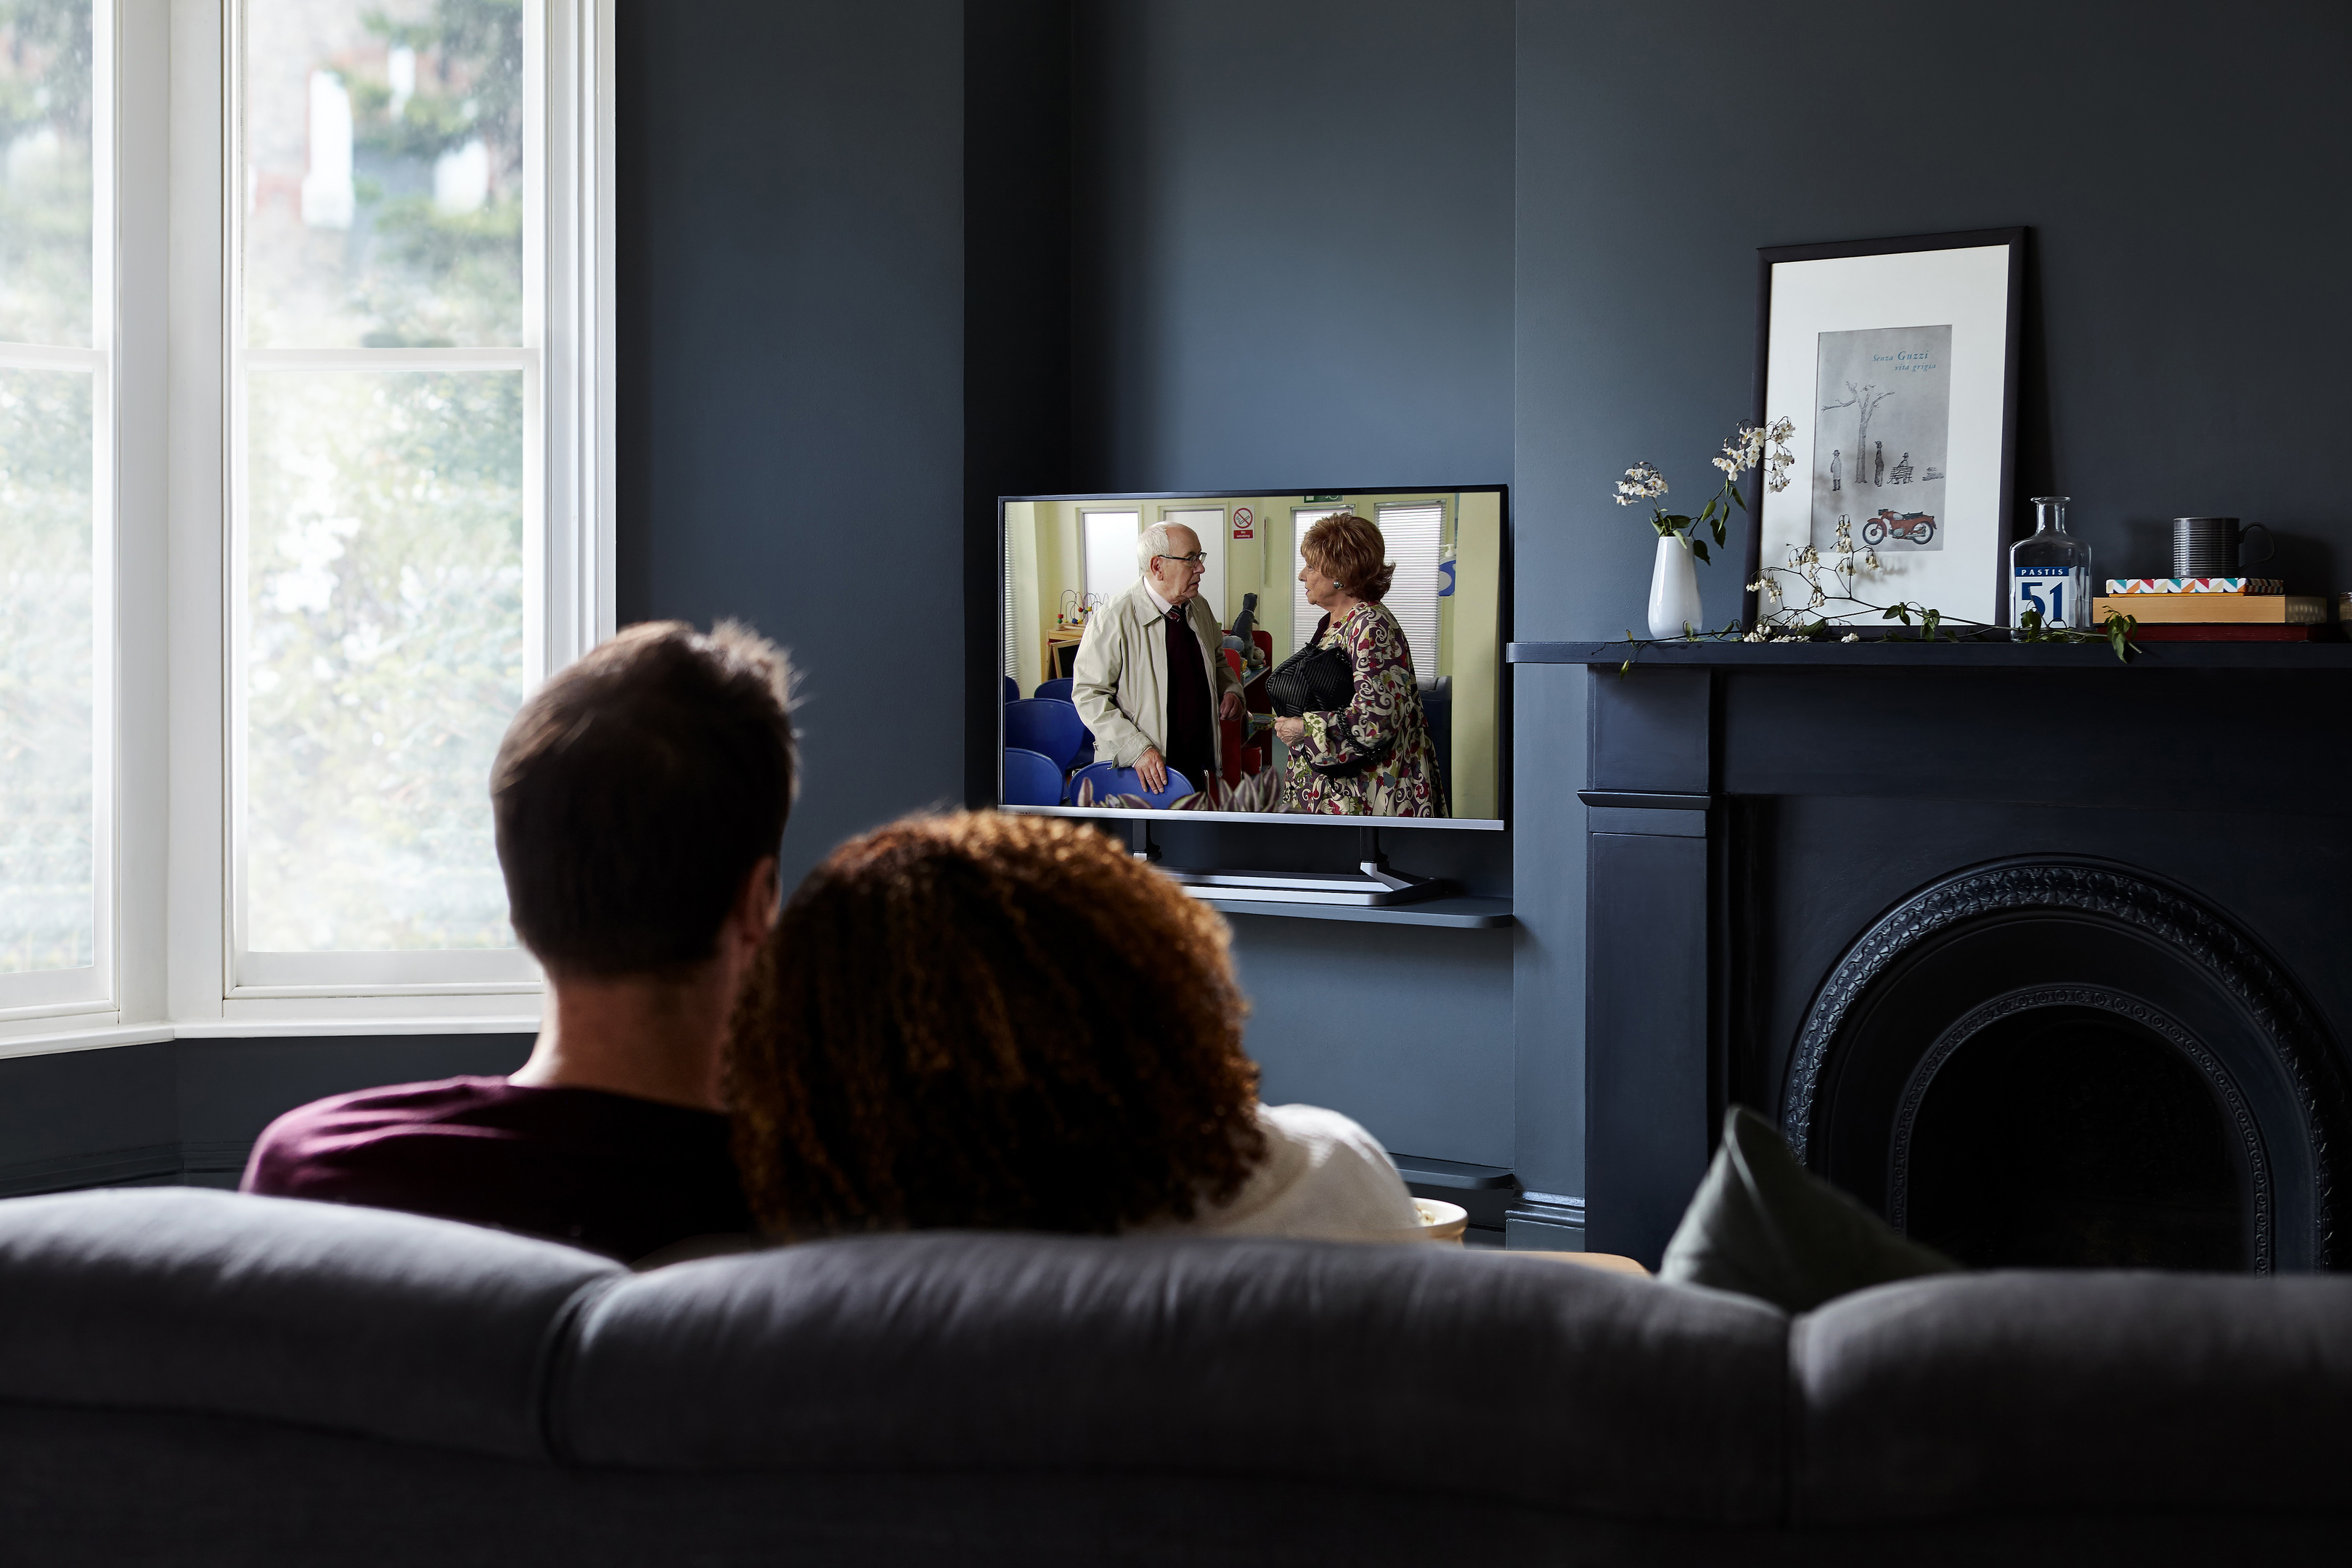 A couple enjoy watching Coronation Street, Scotland's favourite TV show, according to research by Freeview to celebrate its 15th anniversary